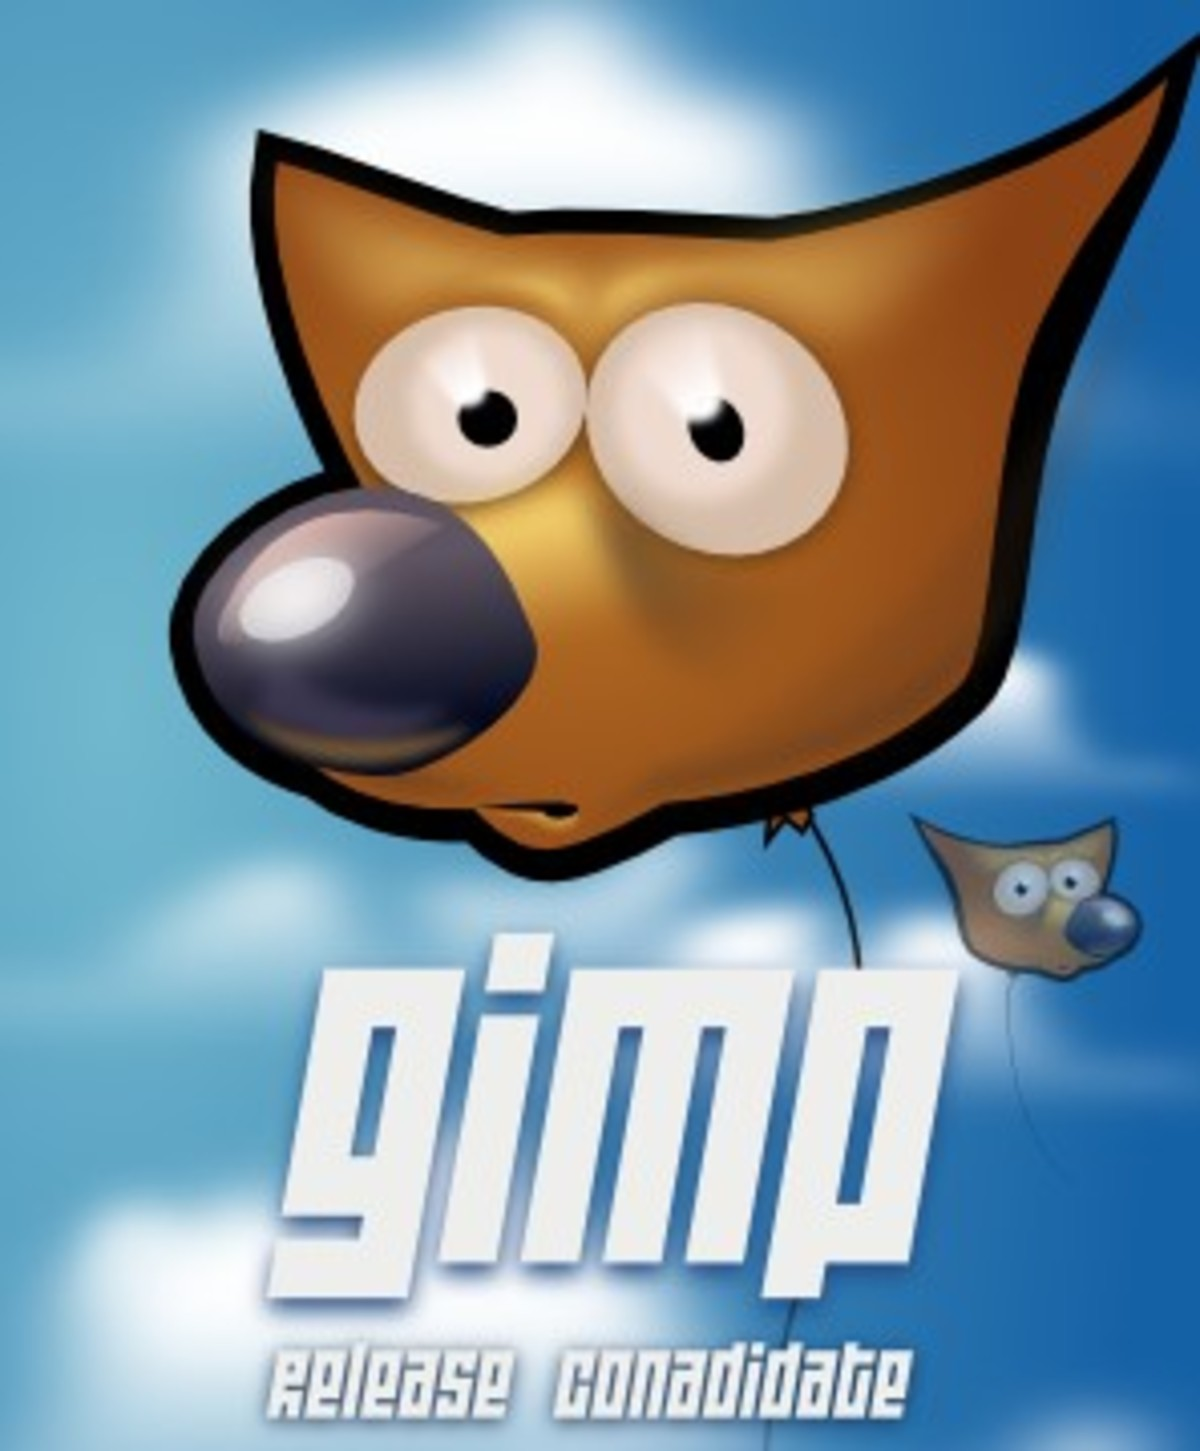 Gimp. Το δωρεάν (freeware) Photoshop | Newsit.gr